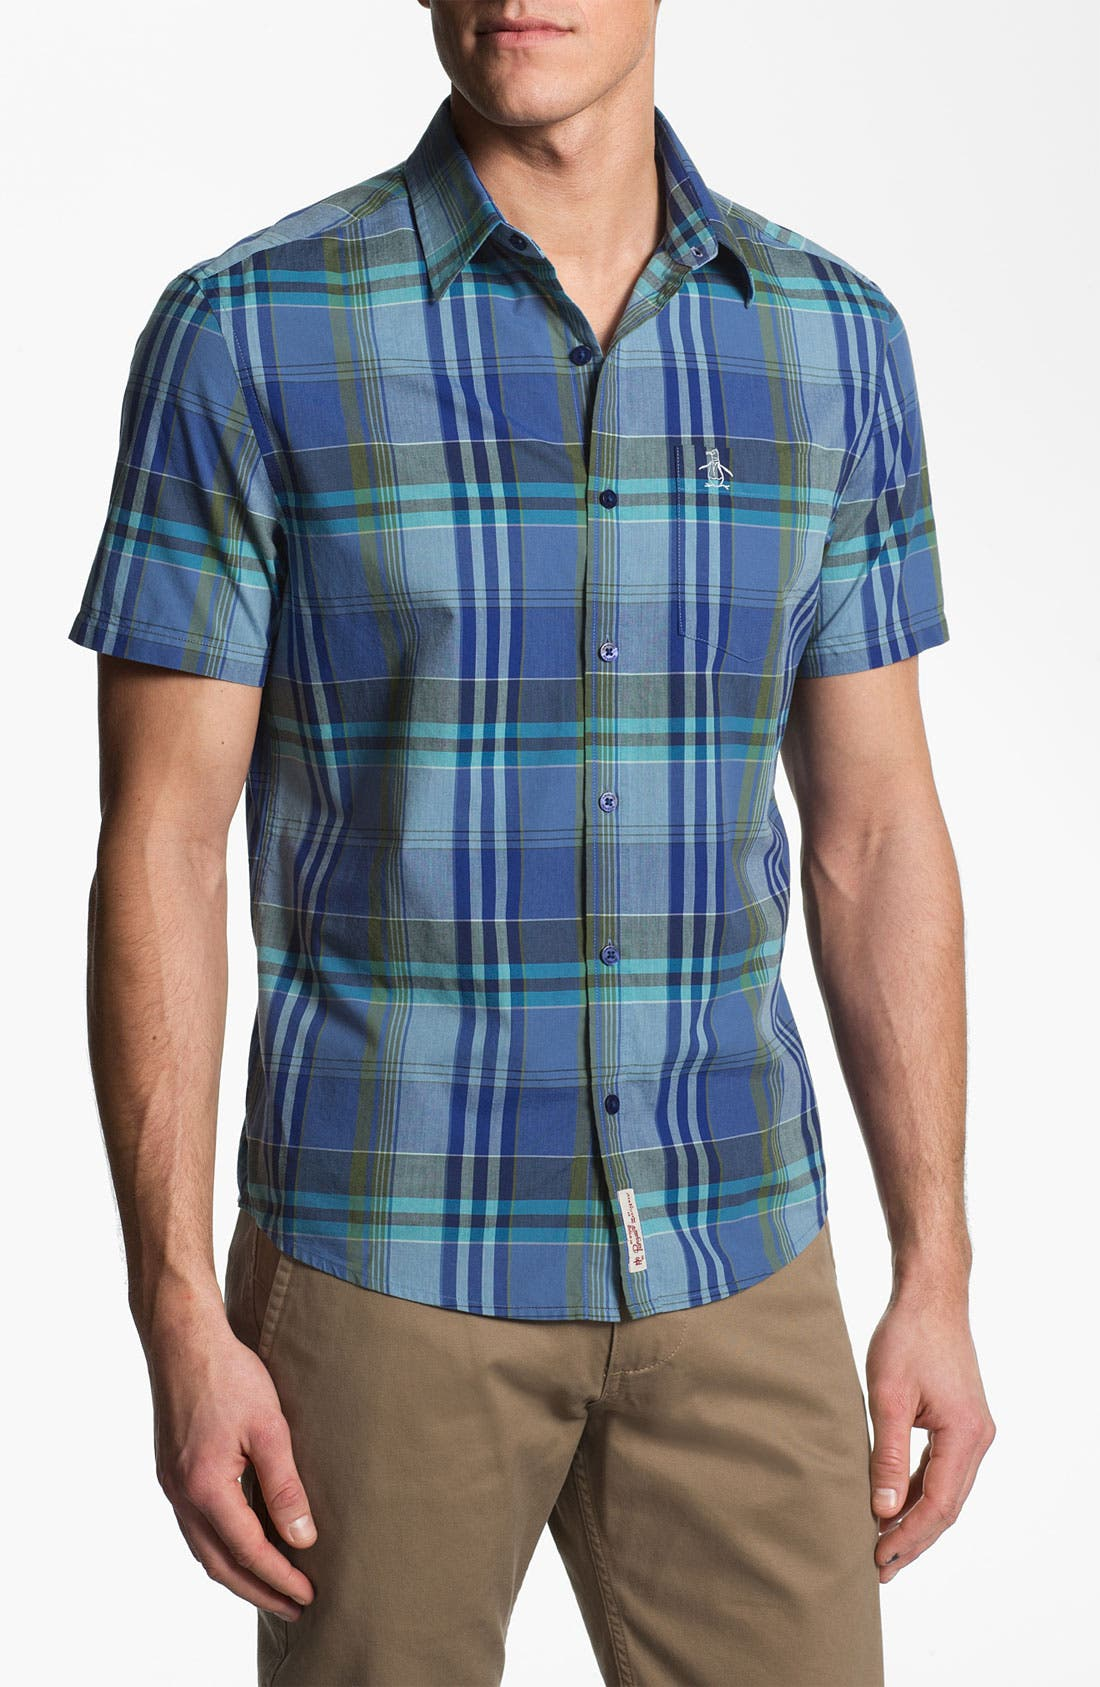 Alternate Image 1 Selected - Original Penguin Plaid Woven Shirt